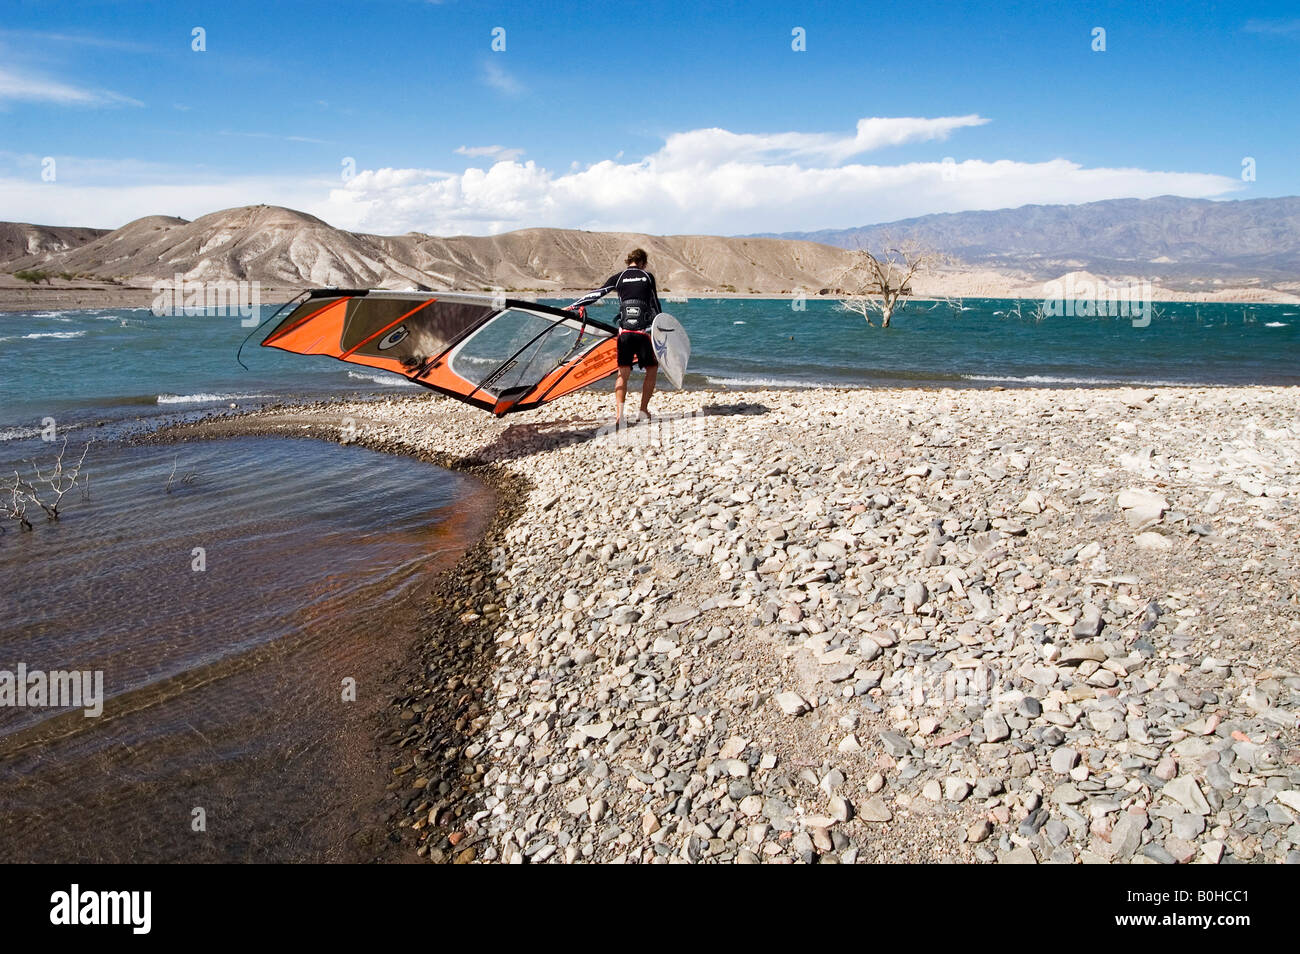 Windsurfer in wetsuit carrying his board and sail across the arid gravel windswept lake shore surrounded by mountains, Stock Photo